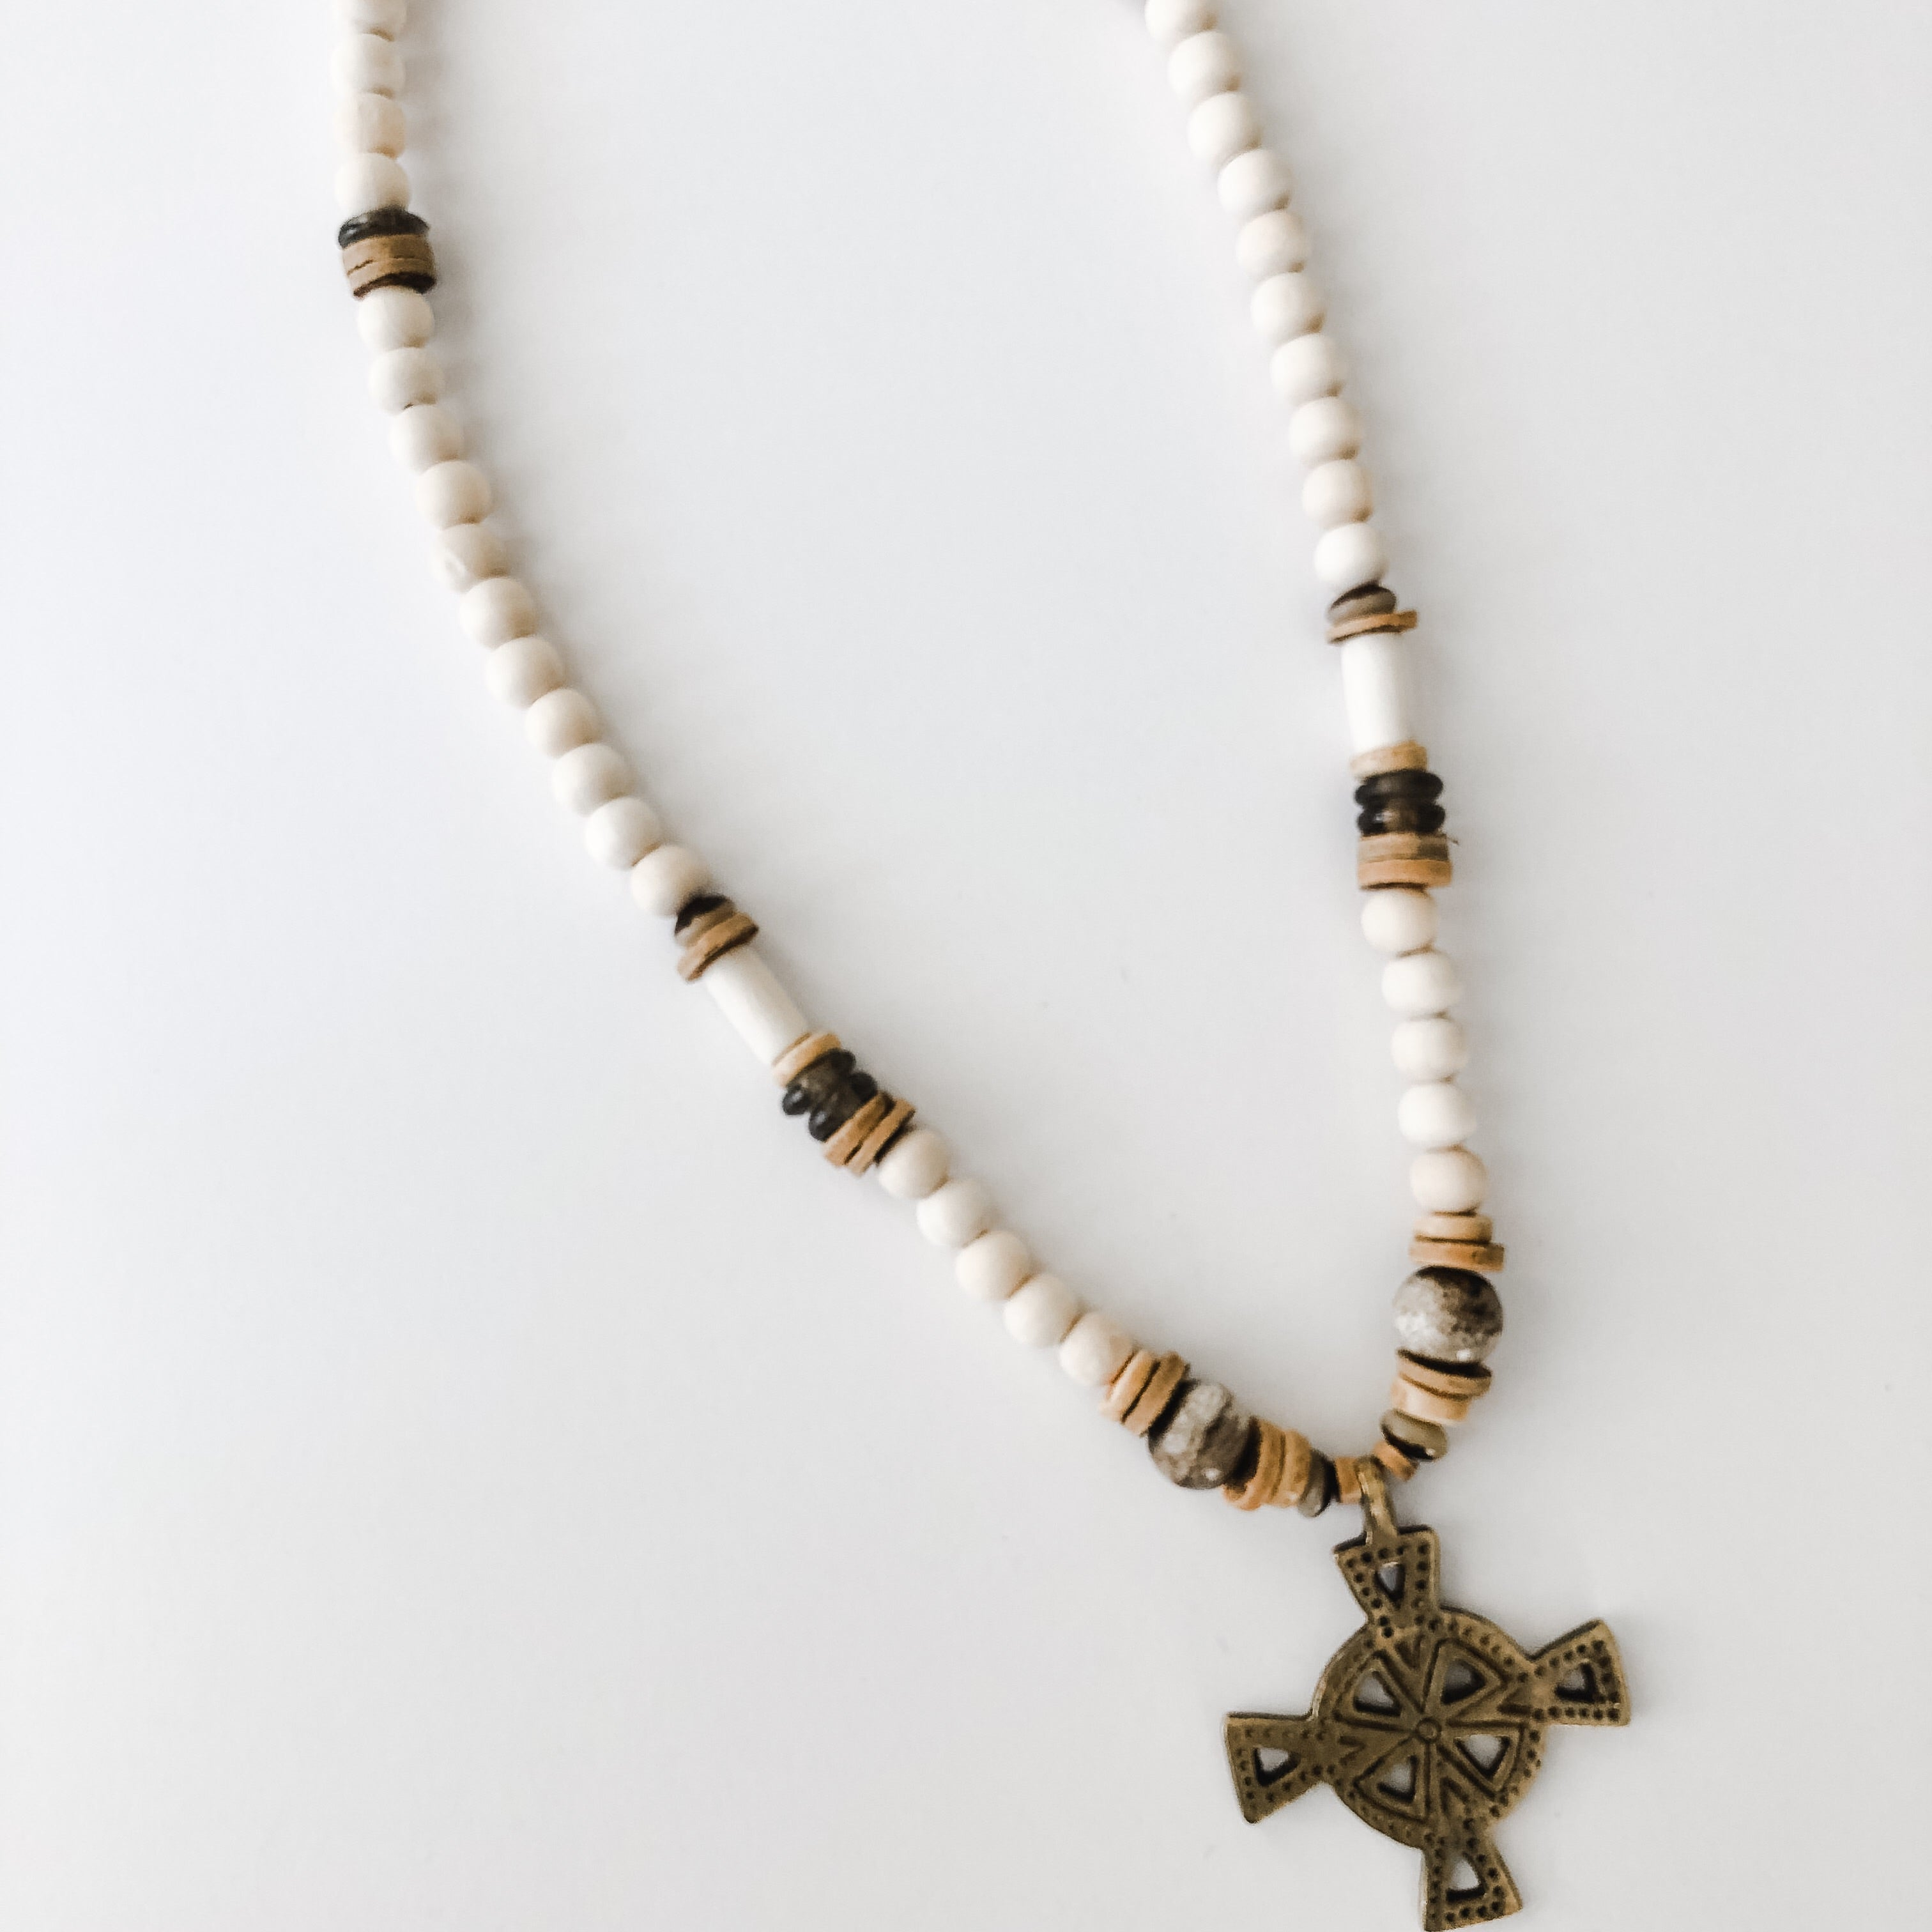 Neutral Beaded Brass Cross Pendant Necklace - Layer Option #2